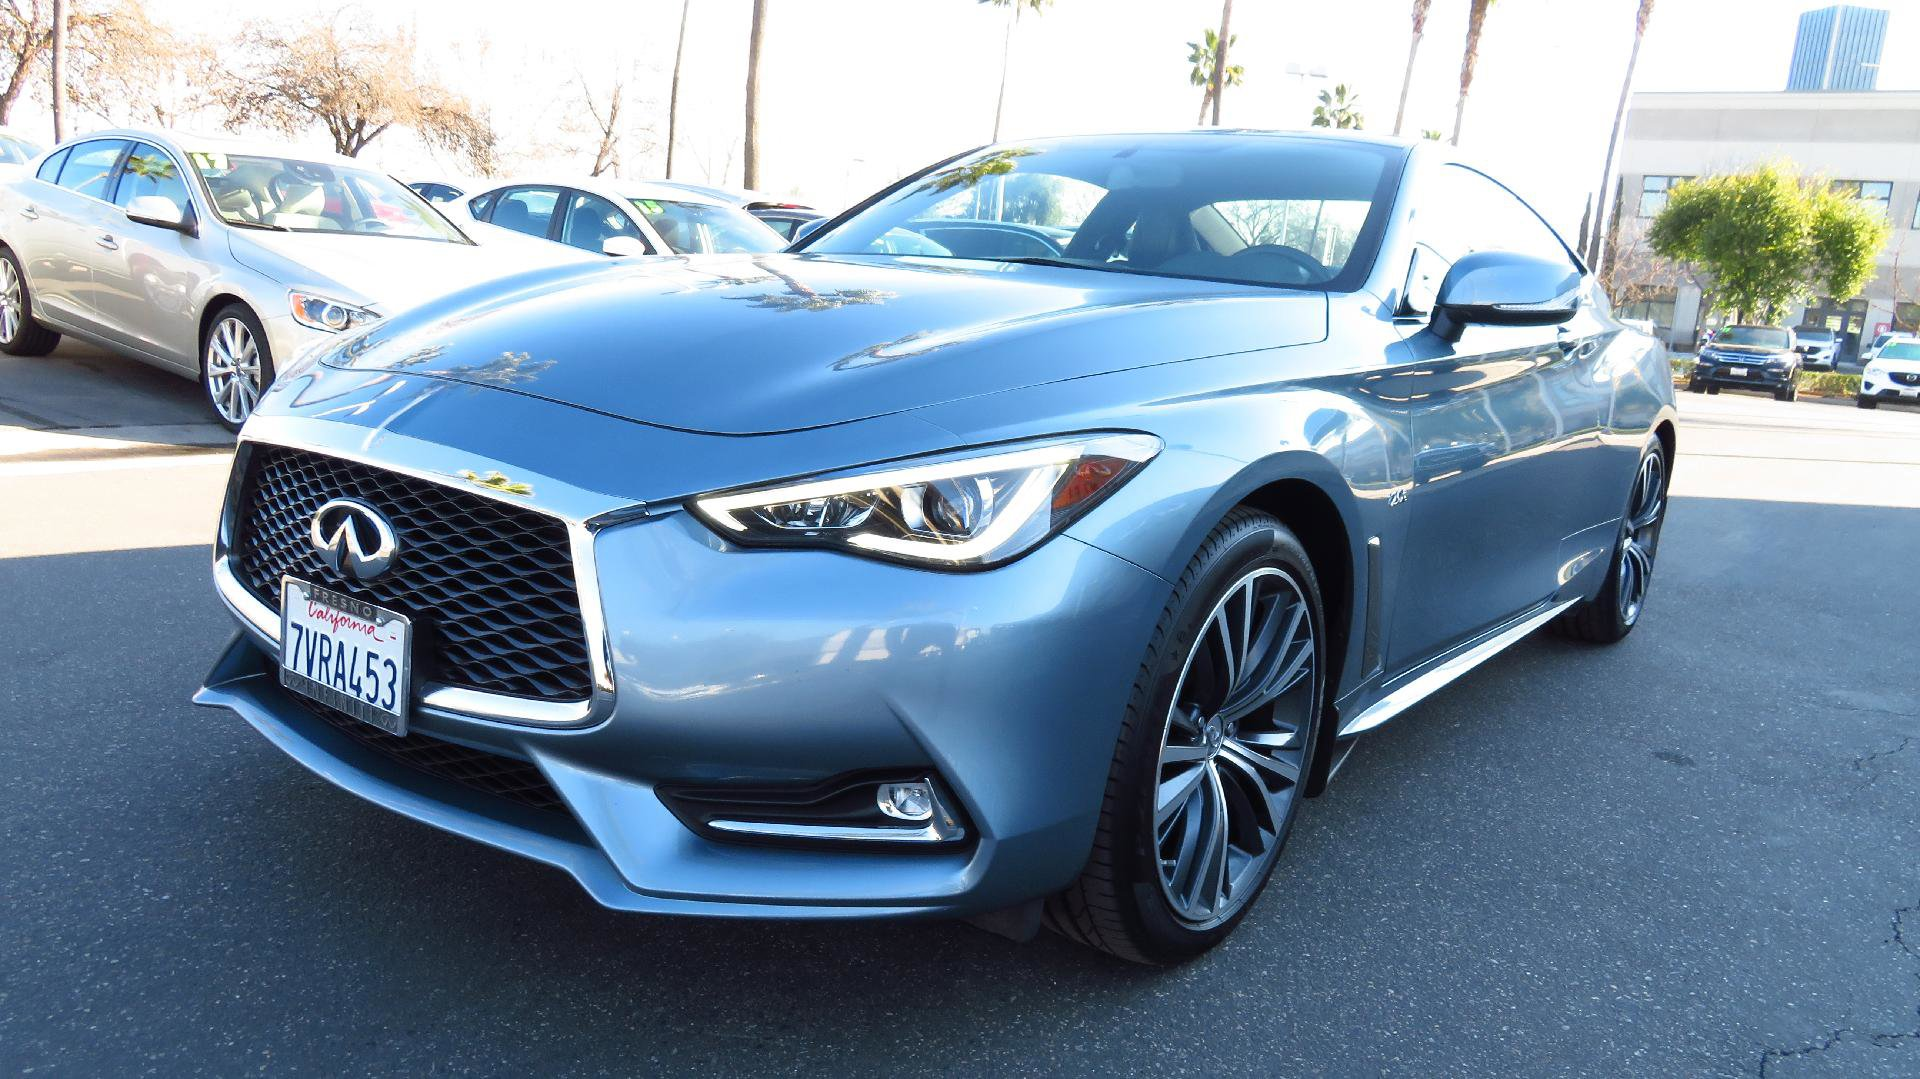 2017 INFINITI Q60 2.0t Coupe w/ MOONROOF PACKAGE image